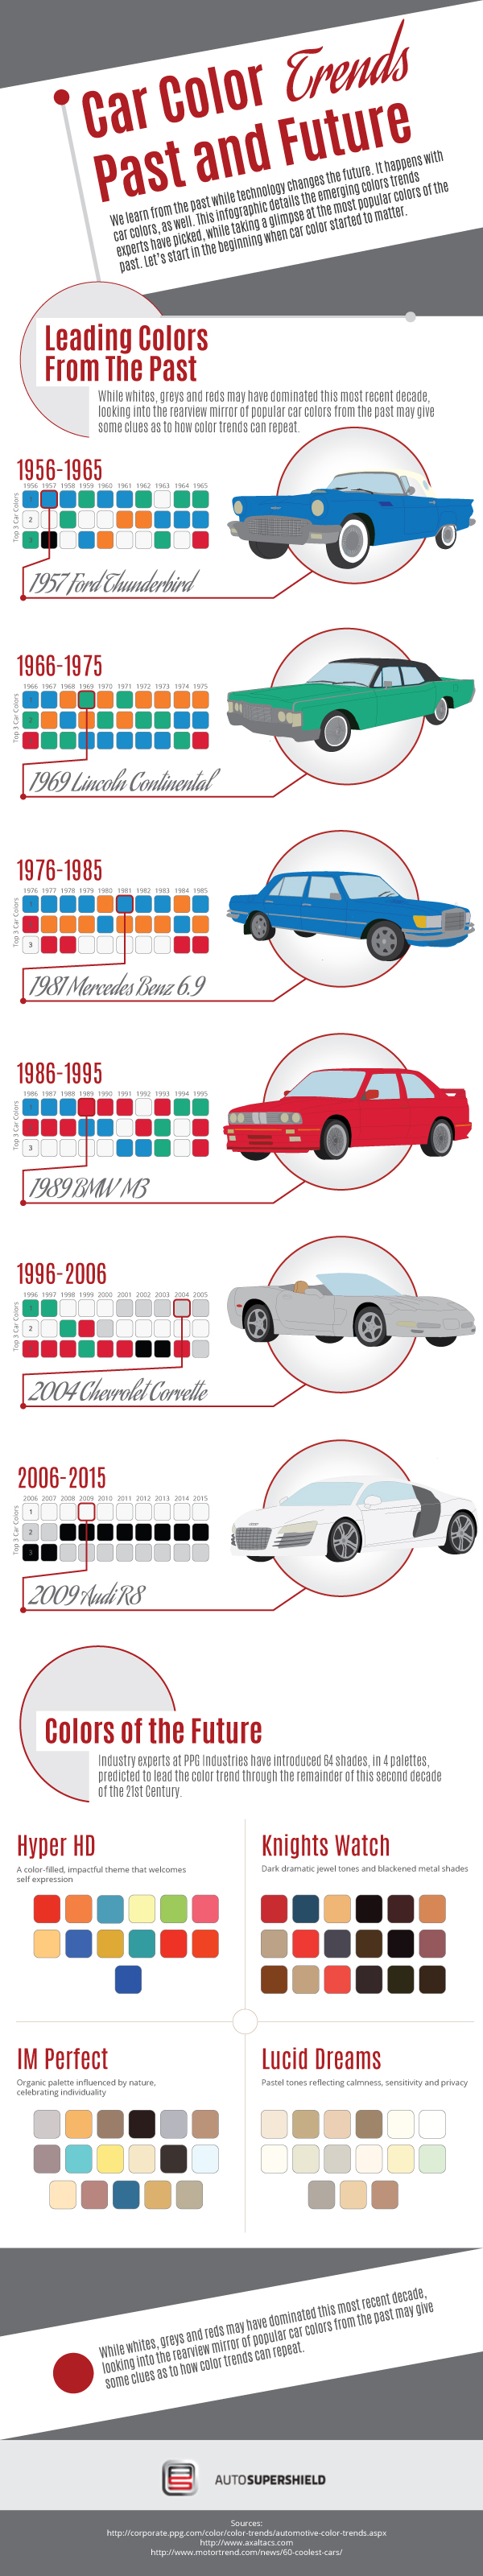 Old and Latest Trends Of Car Colors - Infographic